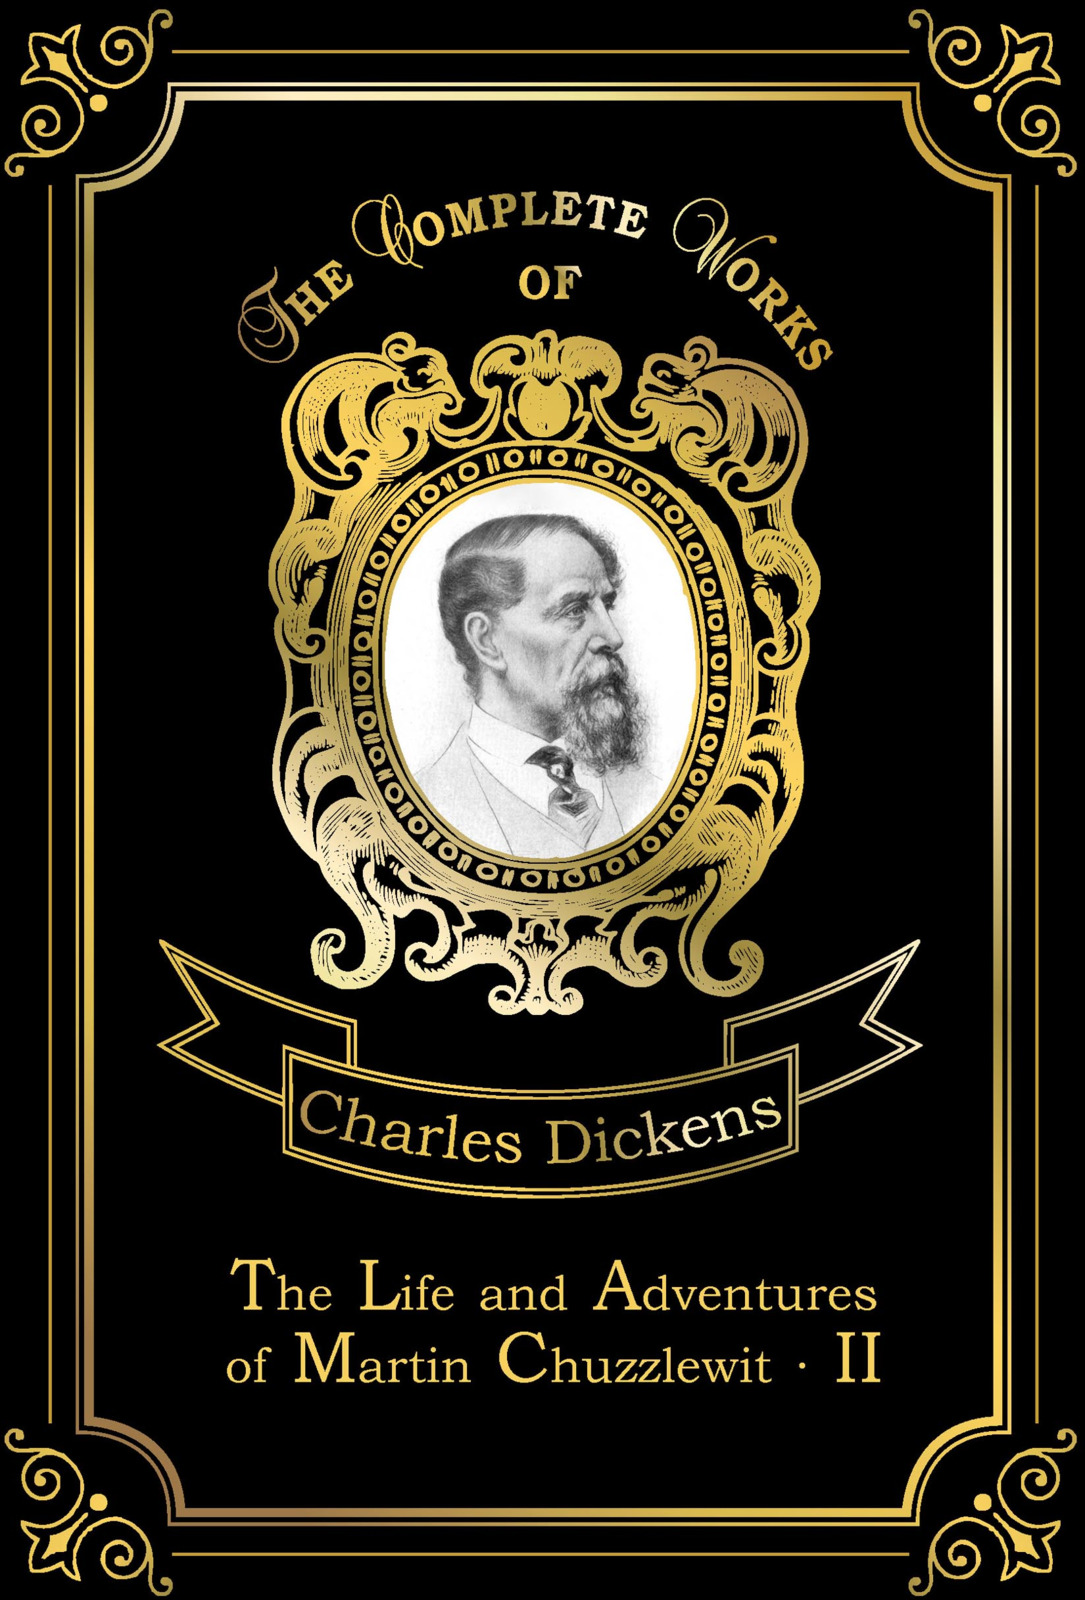 Charles Dickens The Life and Adventures of Martin Chuzzlewit II